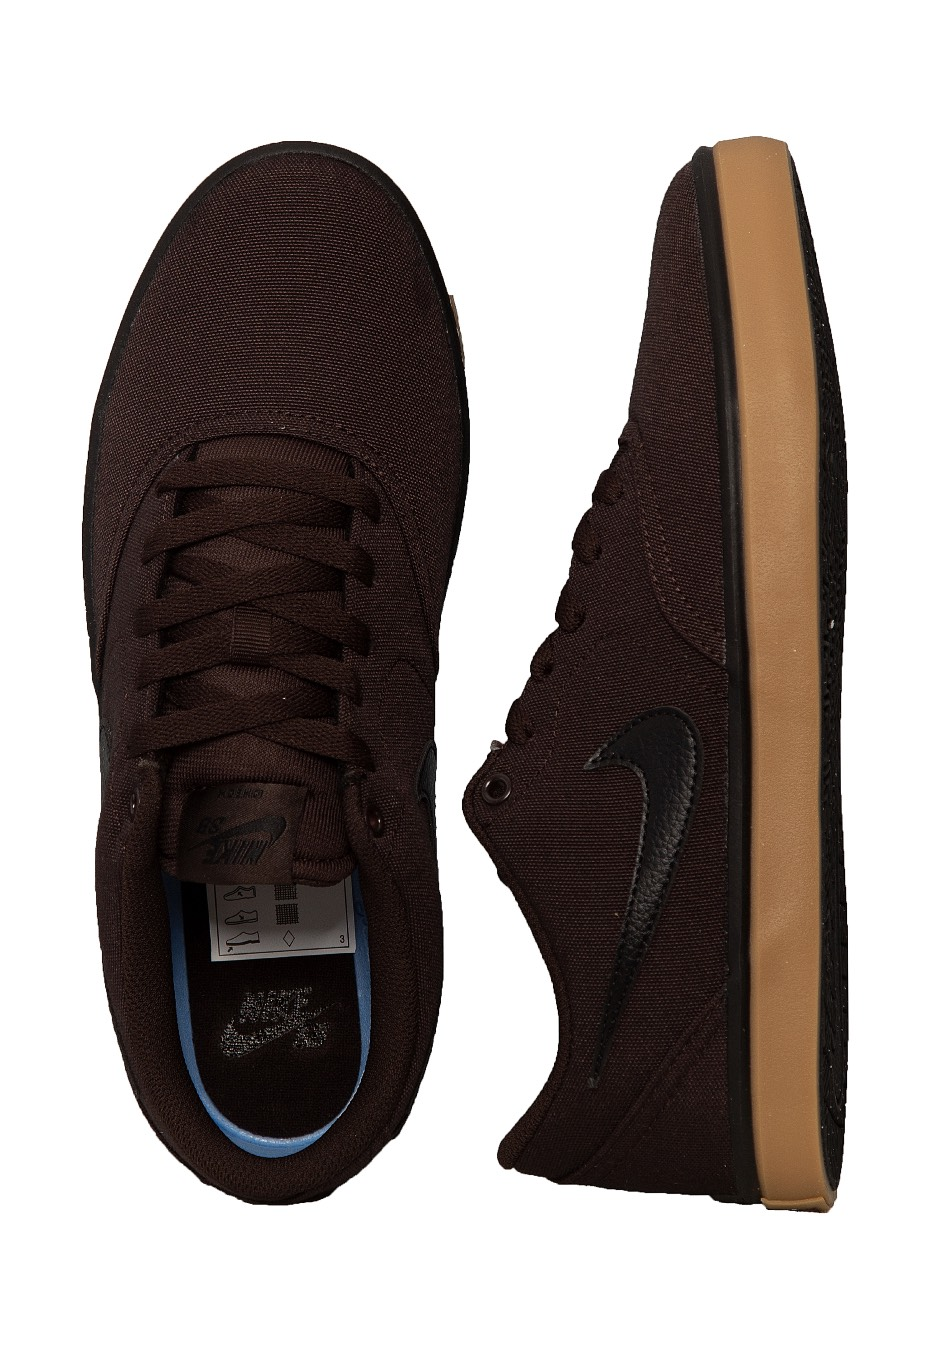 Nike - SB Check Solarsoft Canvas Velvet Brown Black Gum Yellow - Shoes -  Streetwear Shop - Impericon.com US cbfa71d3f800